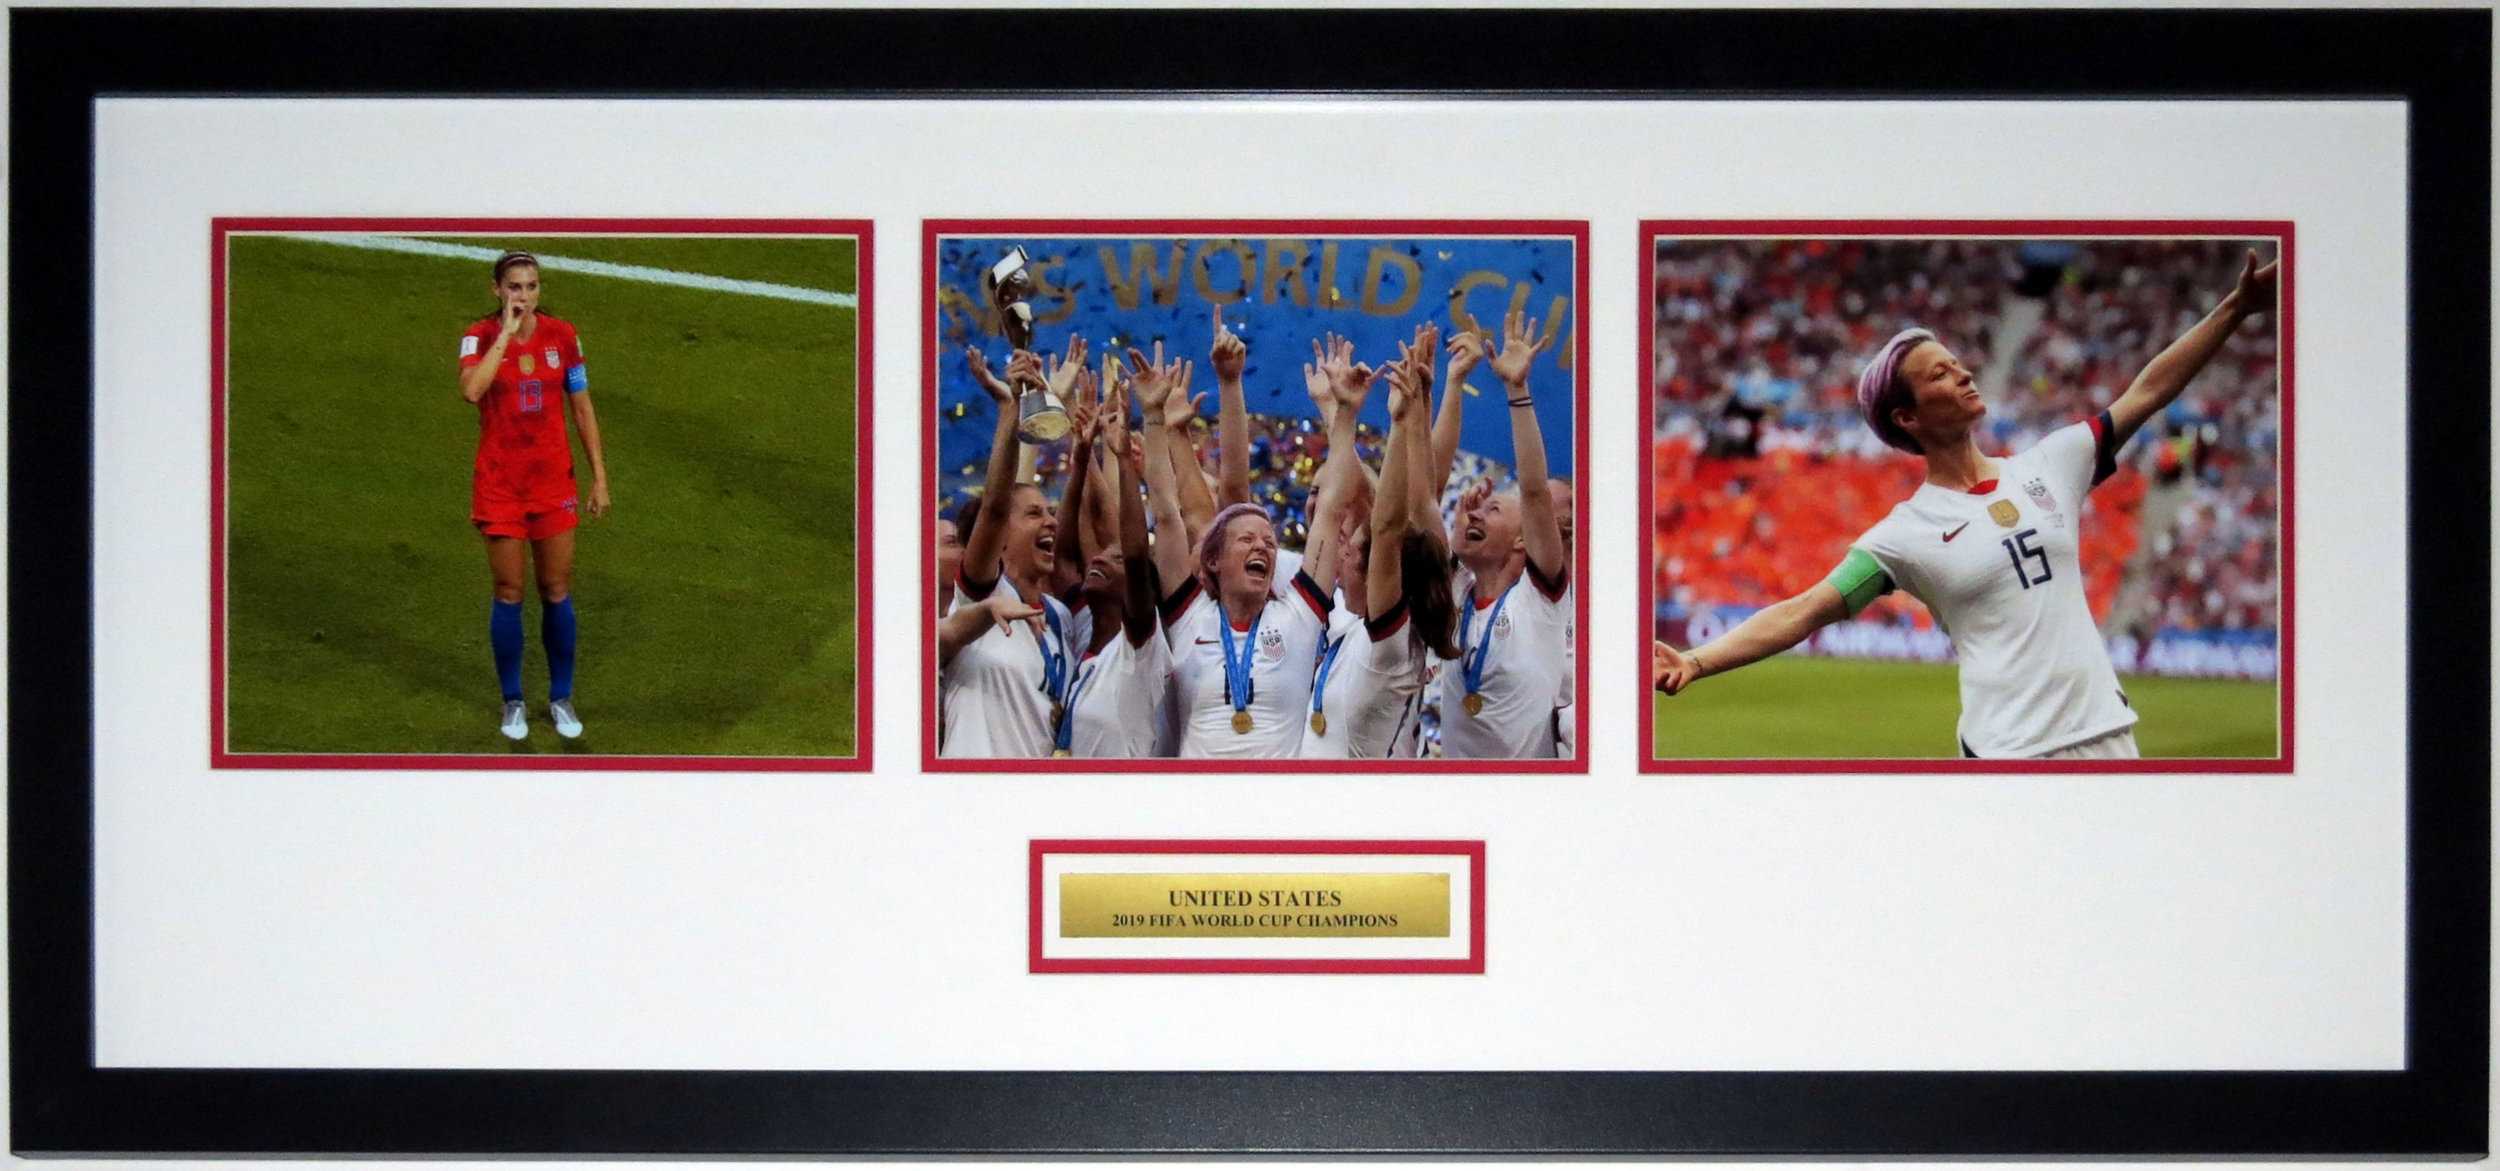 Team USA 2019 World Cup Champions 3 8x10 Photo Compilation - Professionally Framed & Plate